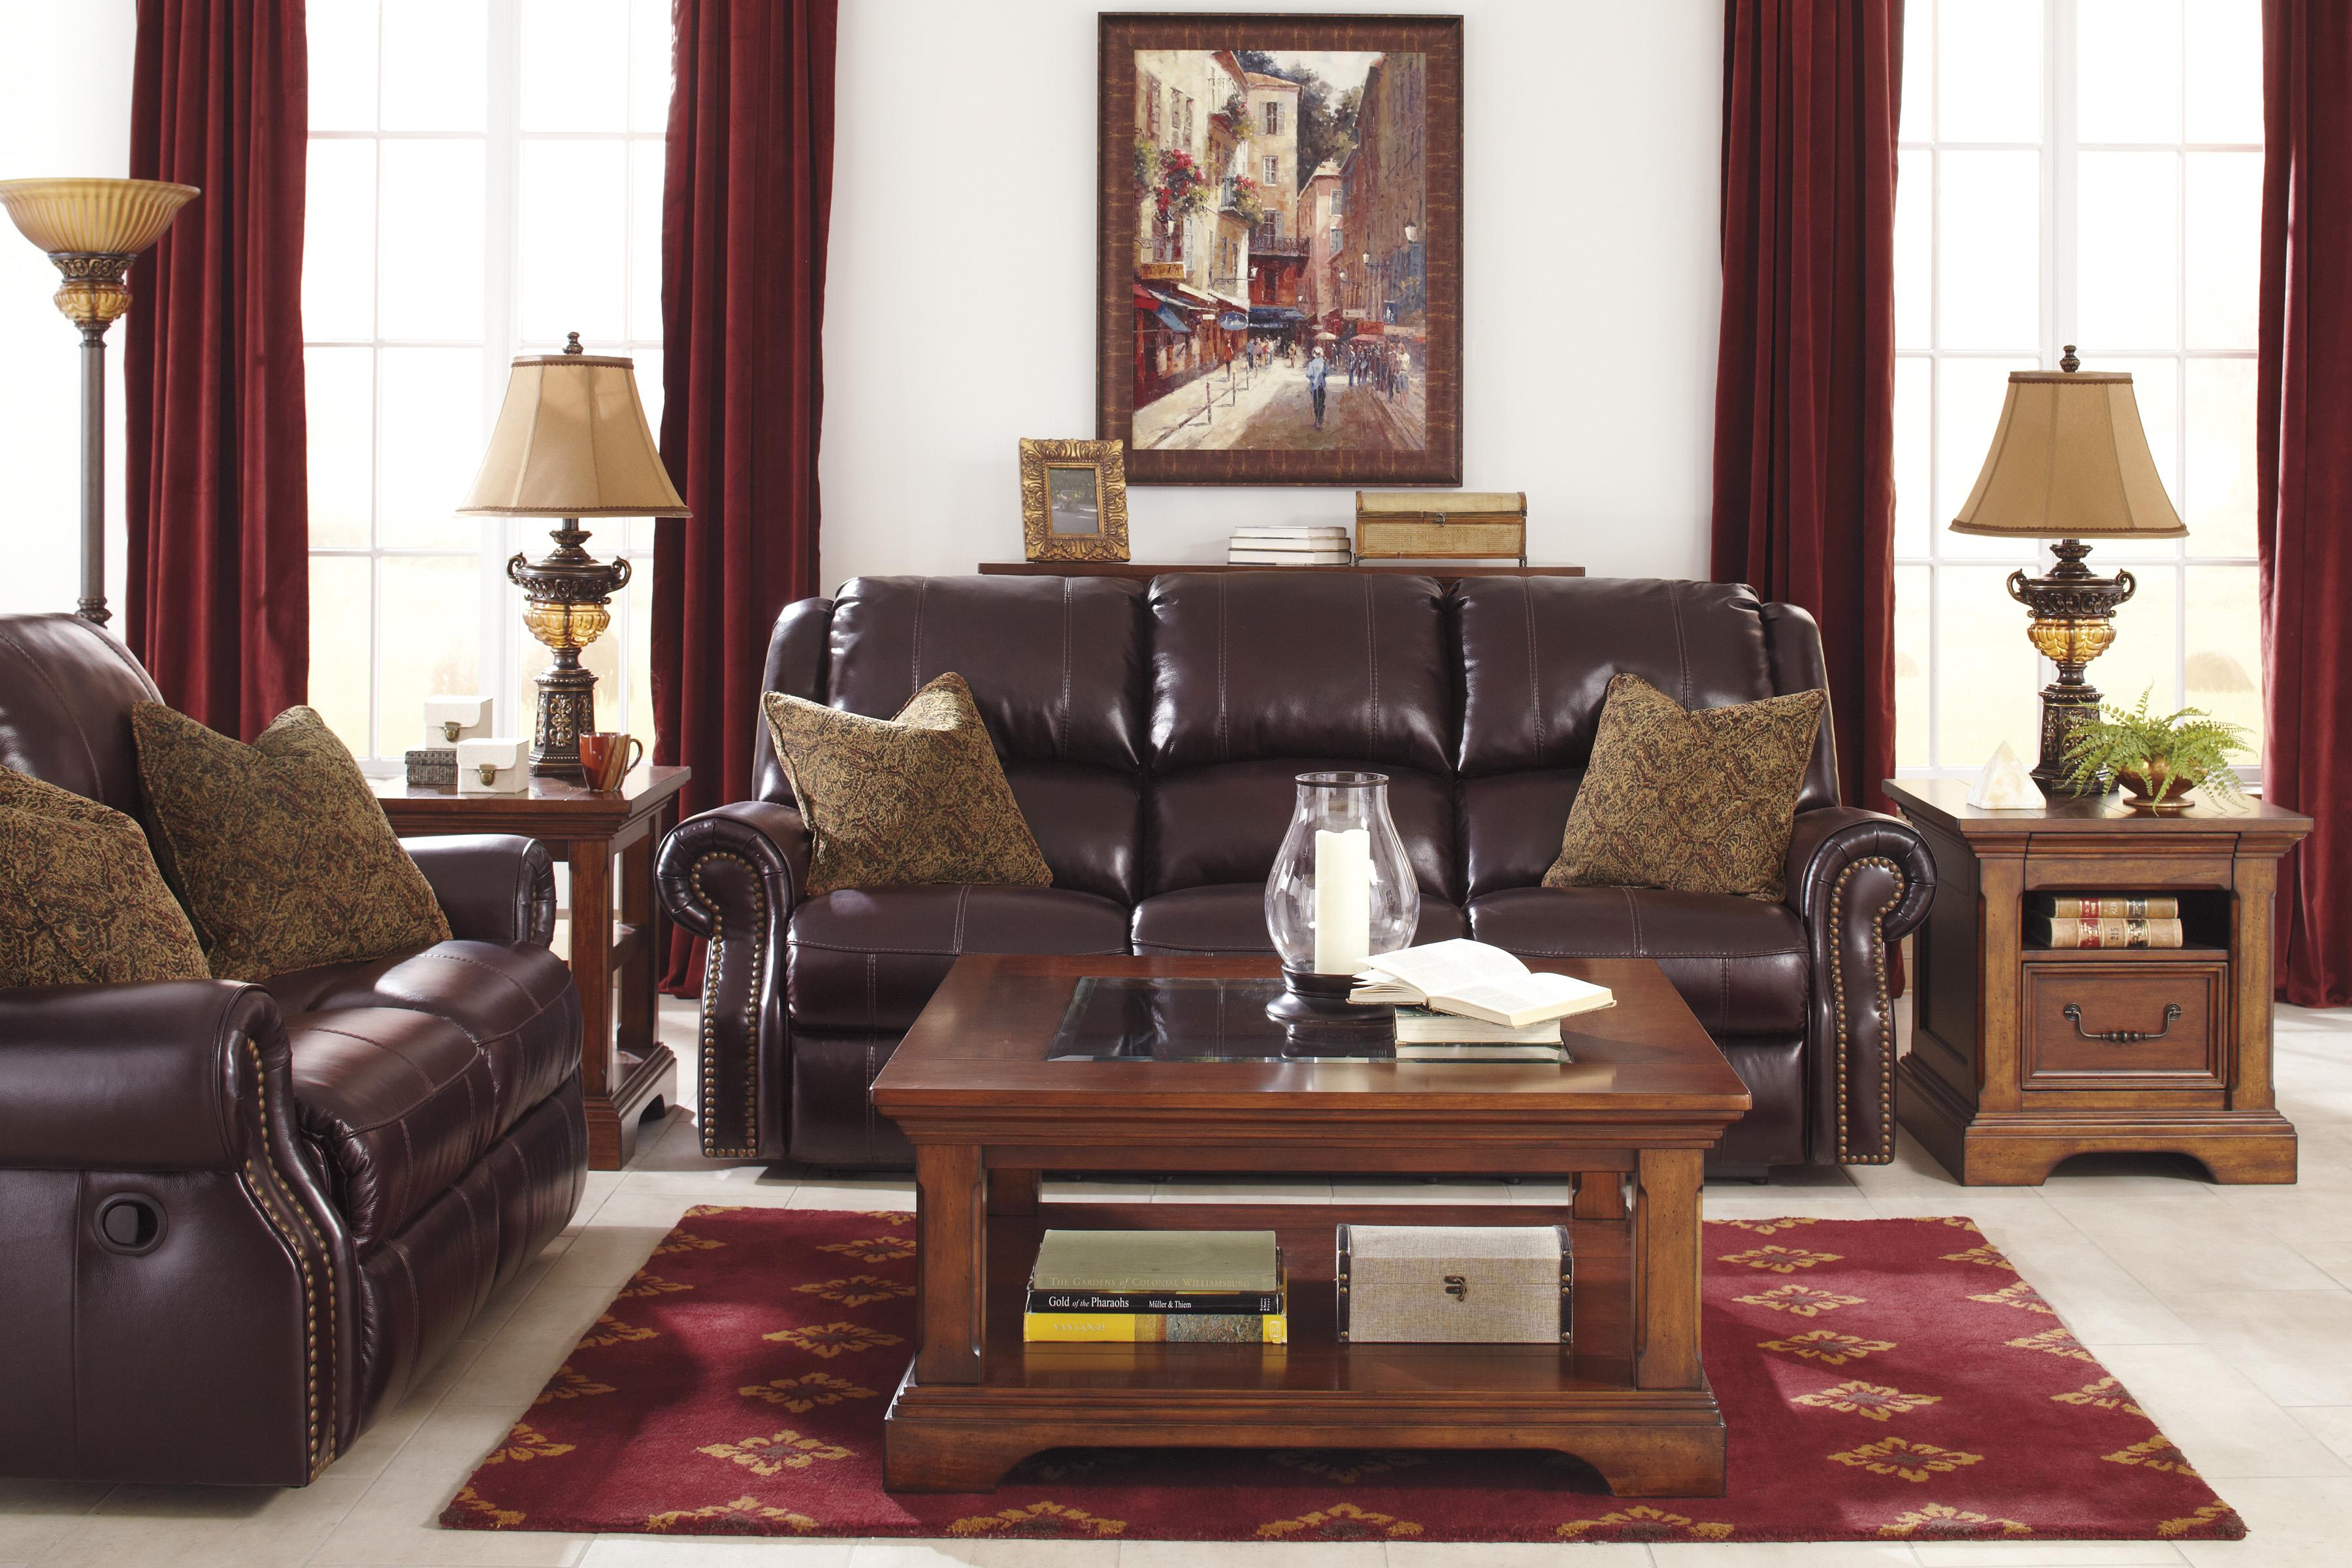 Signature Design by Ashley Walworth Reclining Living Room Group - Item Number: U78002 Living Room Group 2